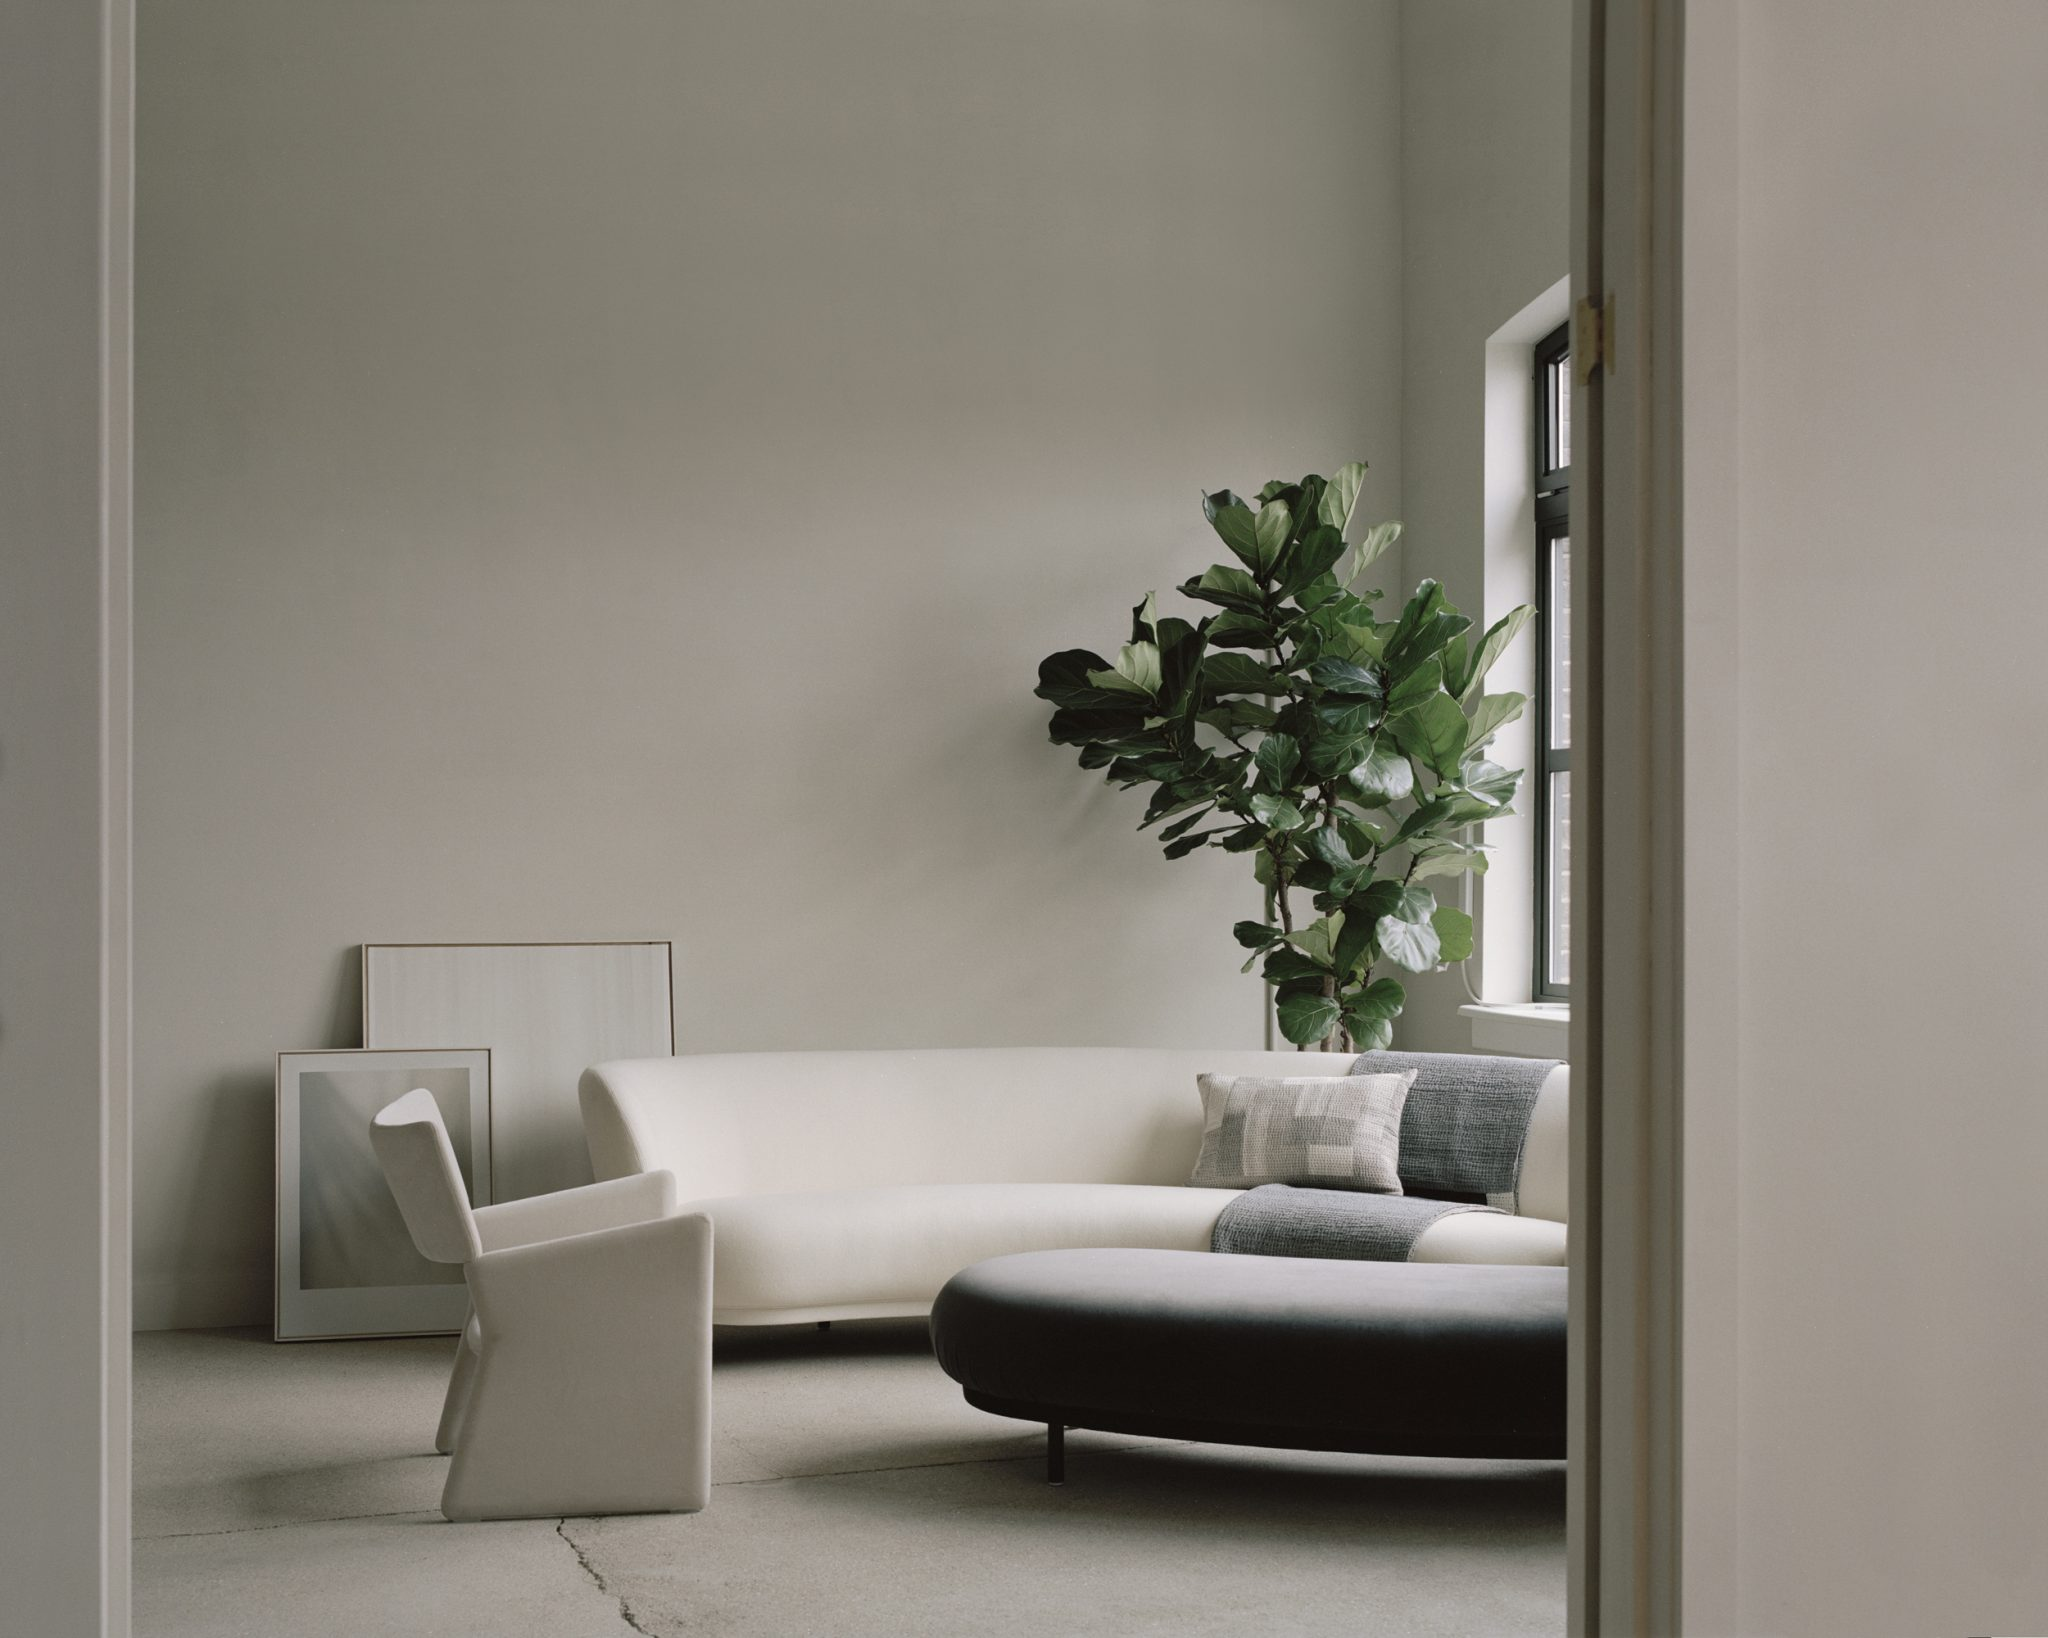 House of Grey's new studio space, with Stitch by Stitch Chindi textiles. Photo: Rory Gardiner